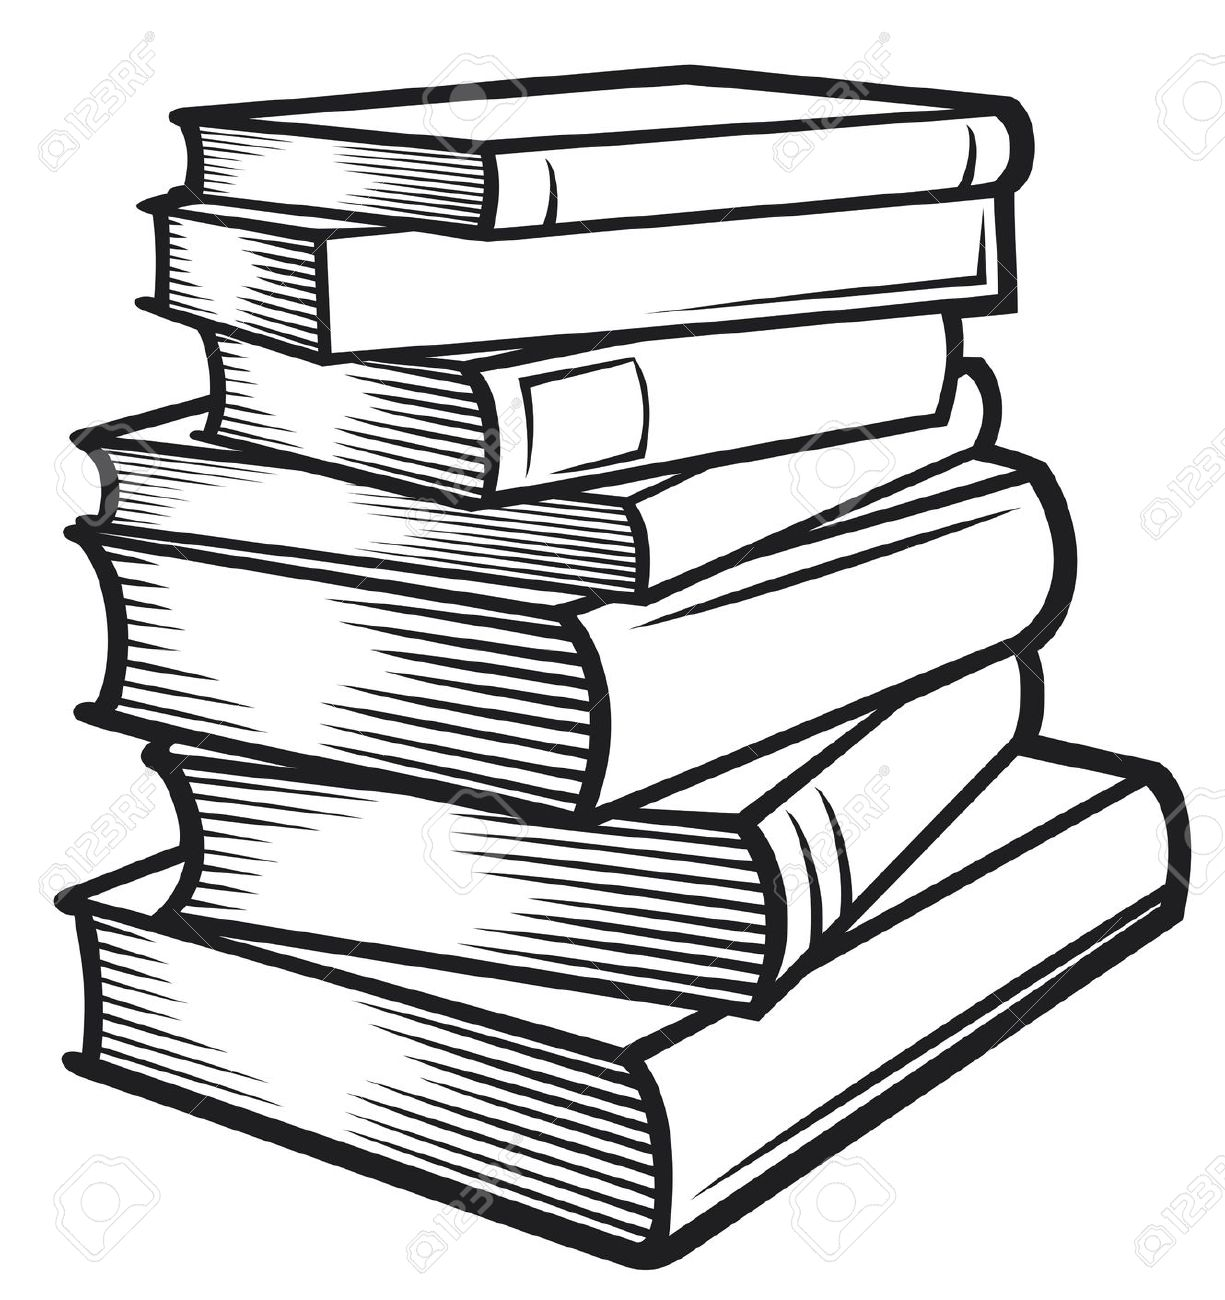 1225x1300 Image Of Books Clipart Black And White